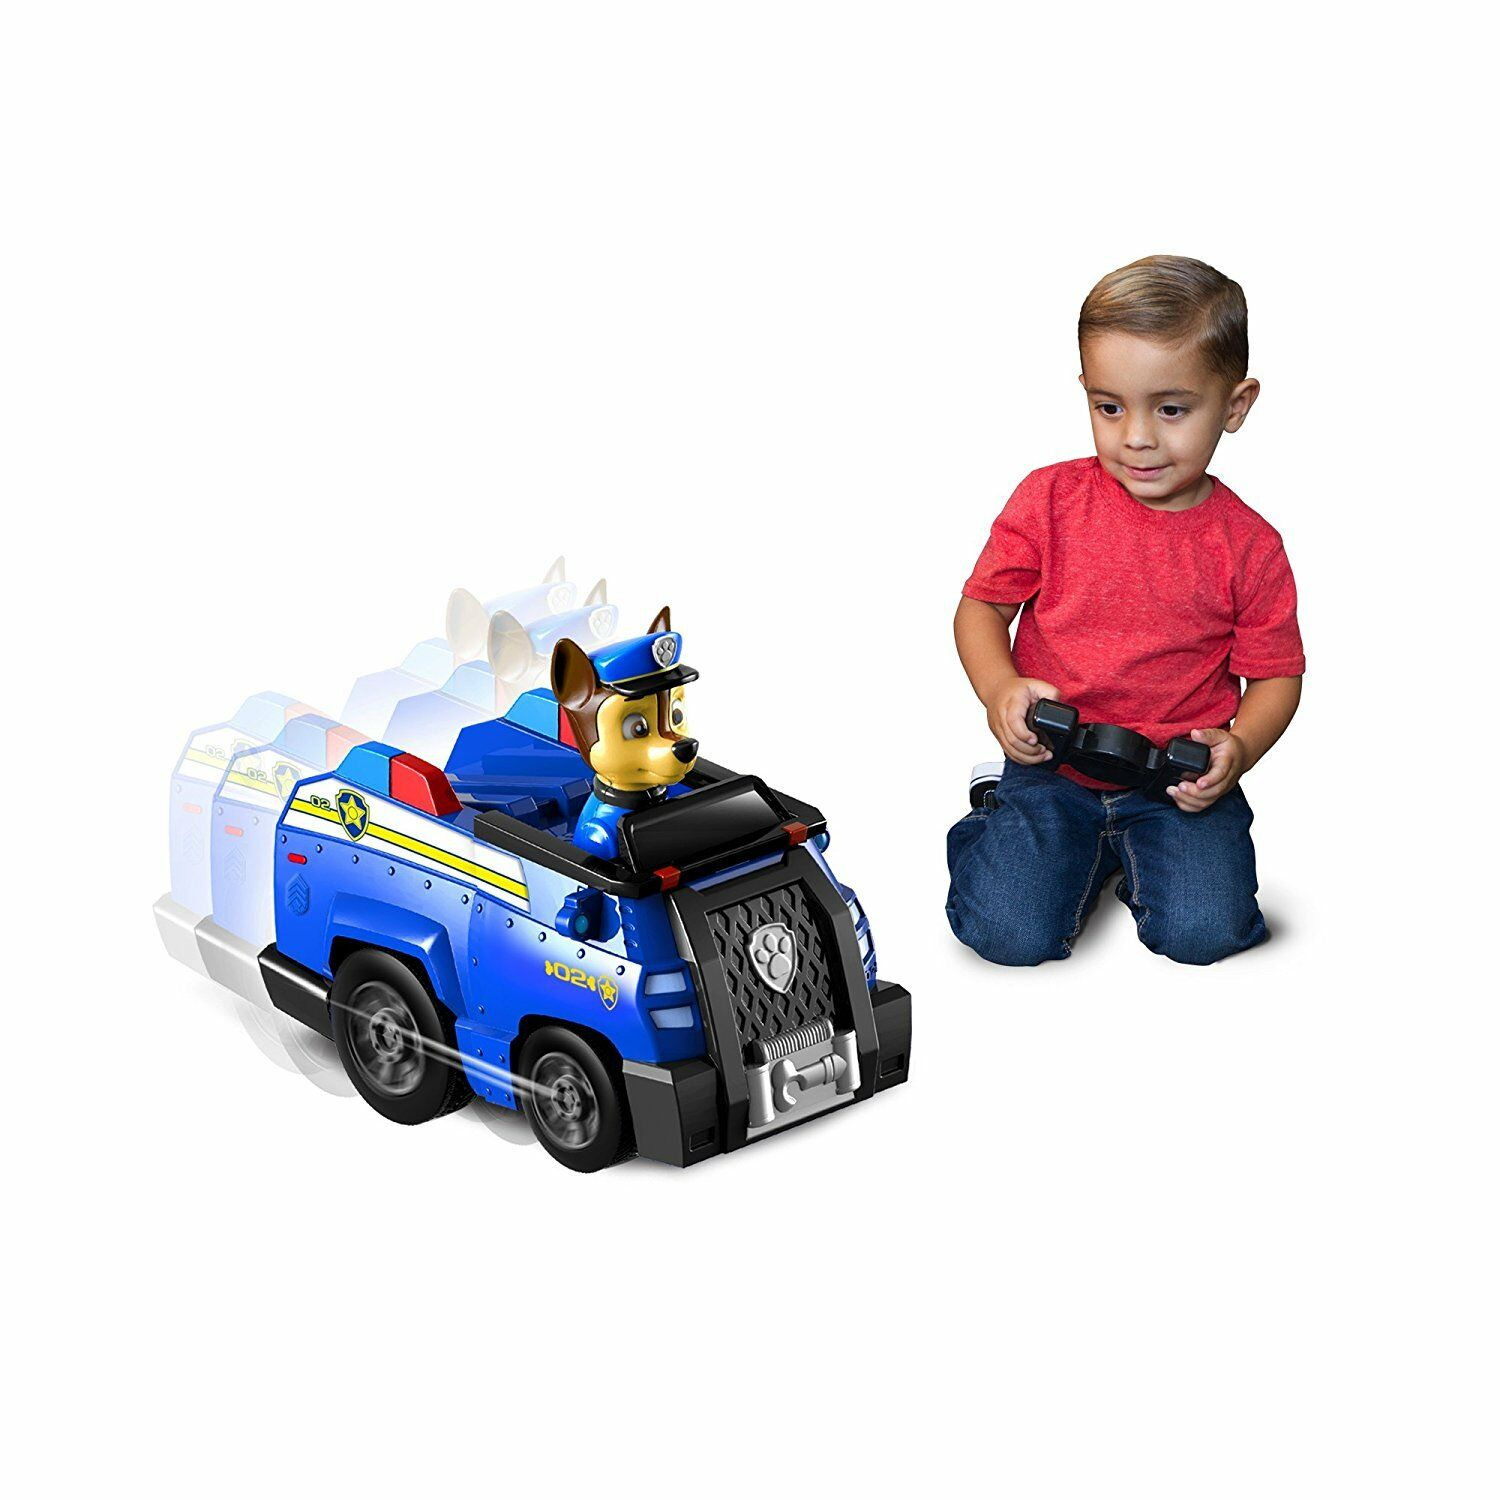 Paw Patrol Remote Control Rescue Racer (1:40) - Chase (3+ Years) RC Toy Car